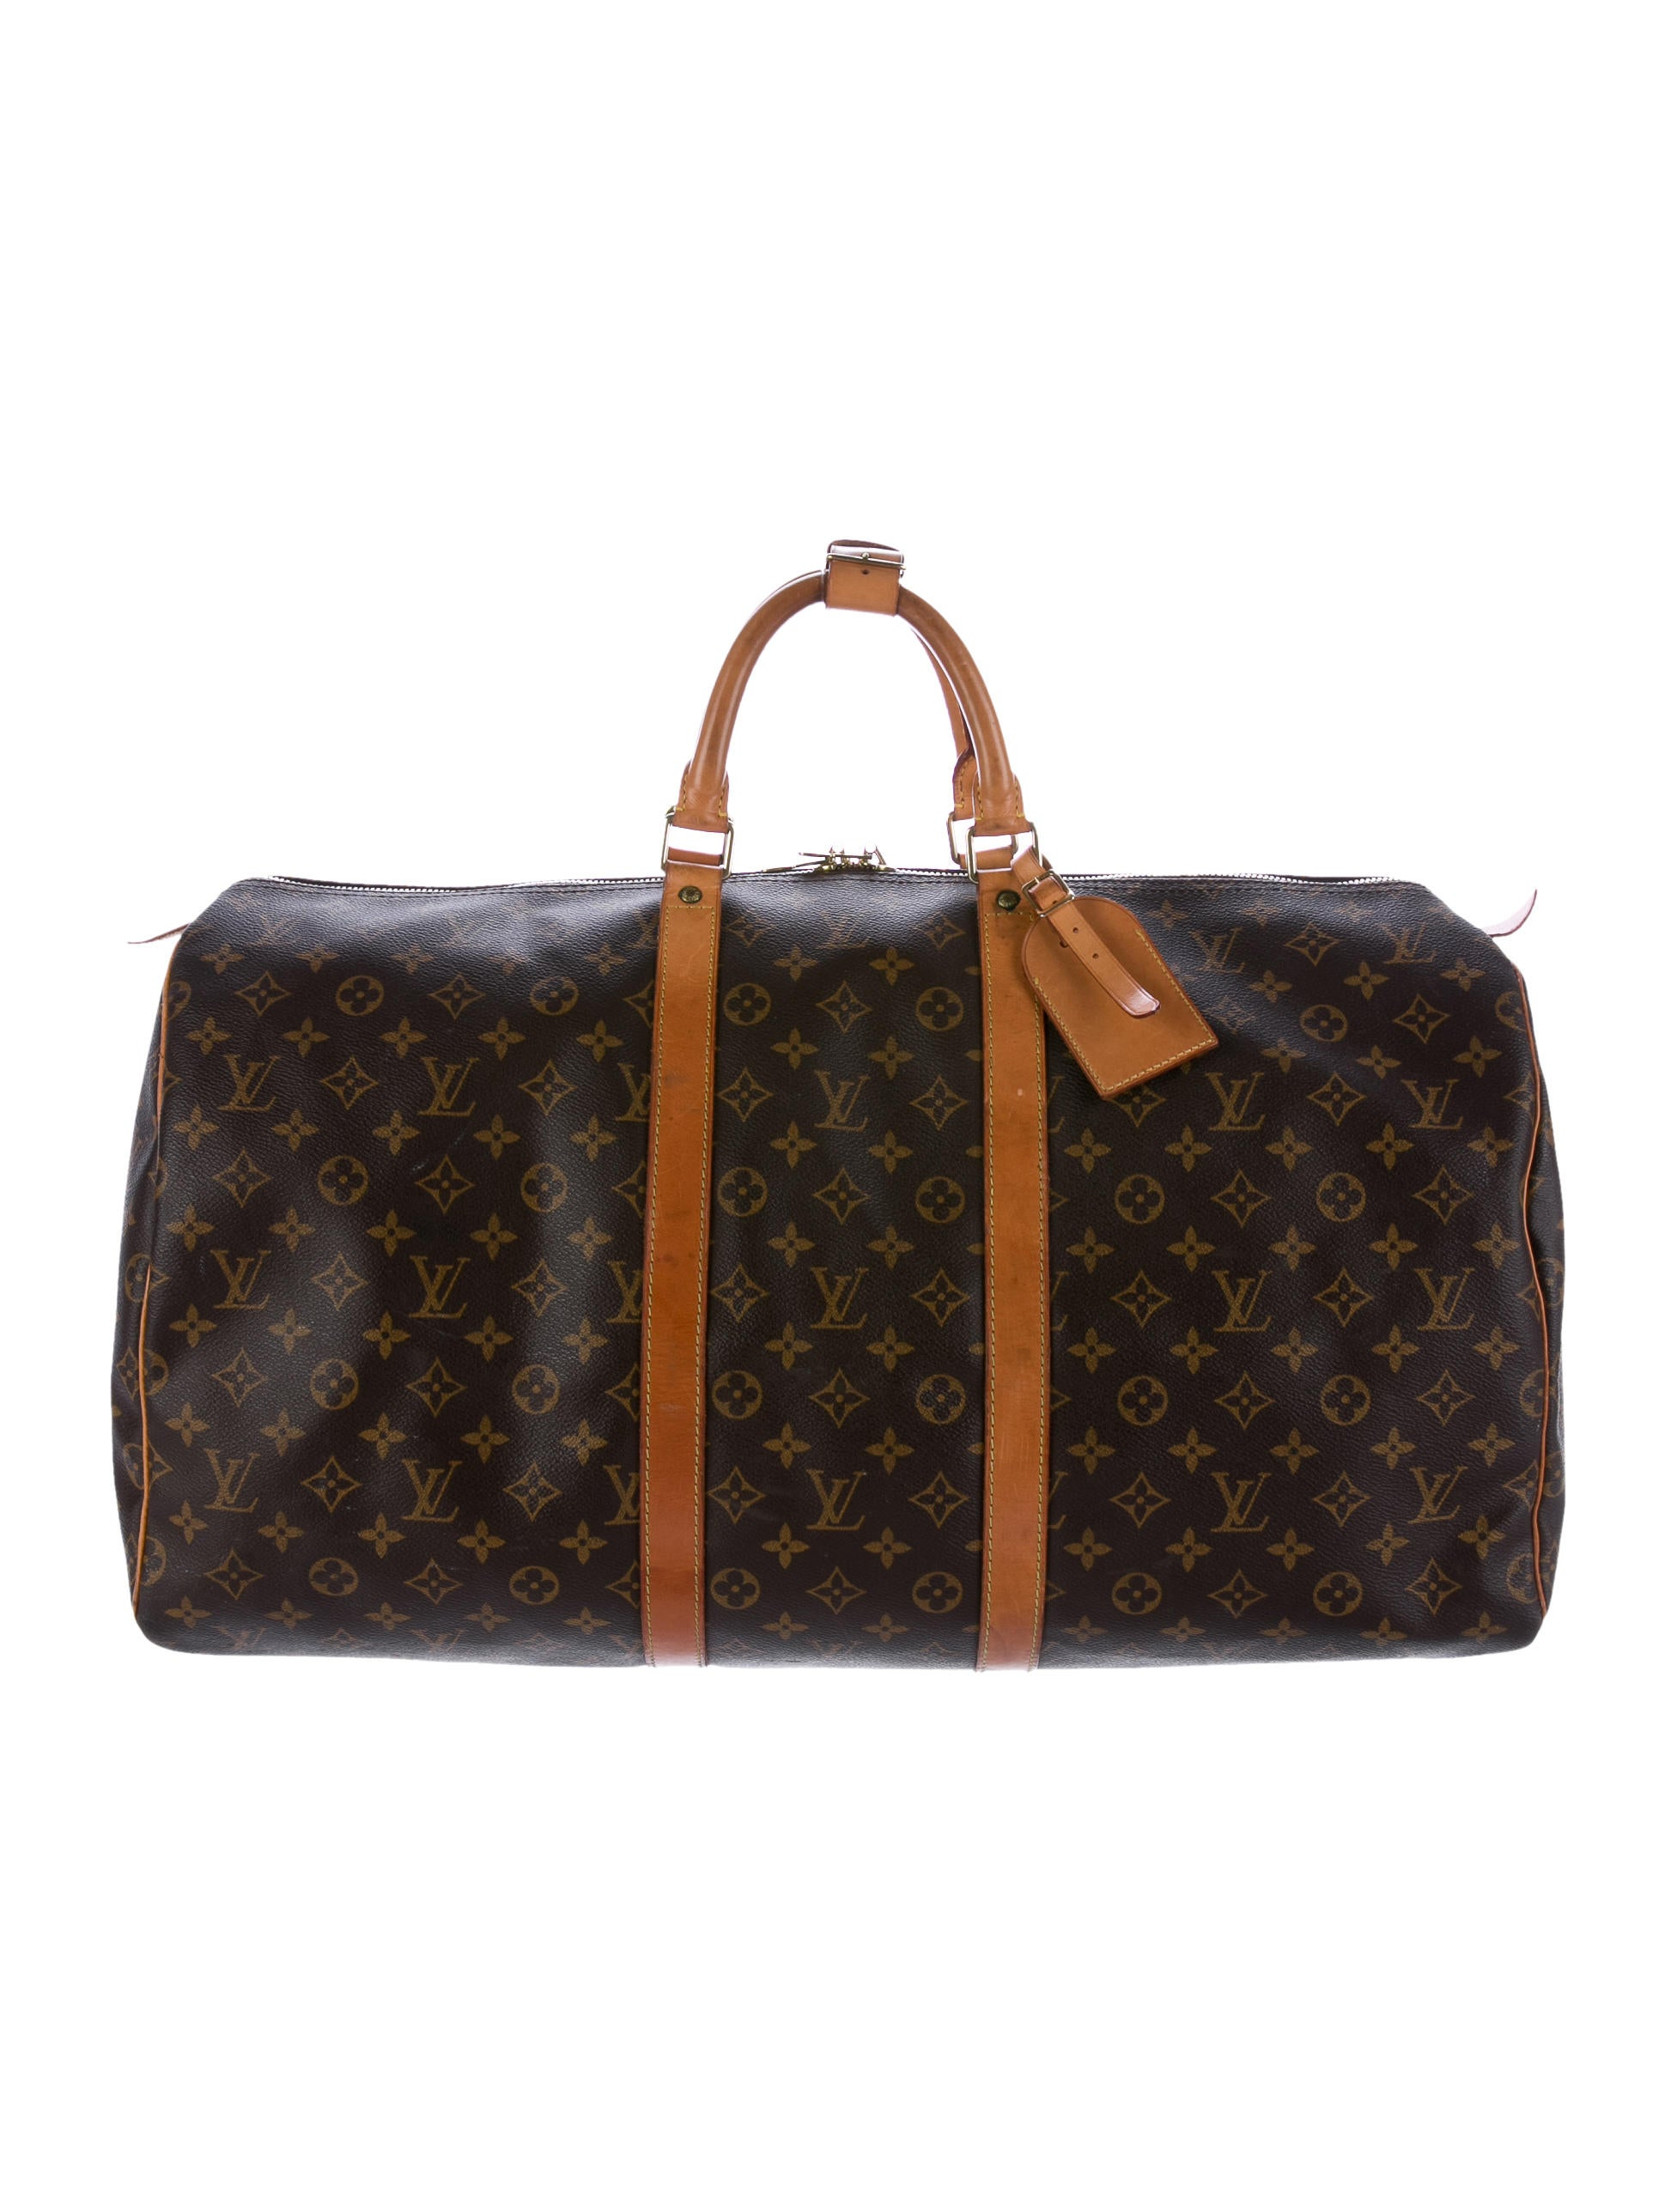 louis vuitton monogram keepall 55 bags lou122850 the. Black Bedroom Furniture Sets. Home Design Ideas